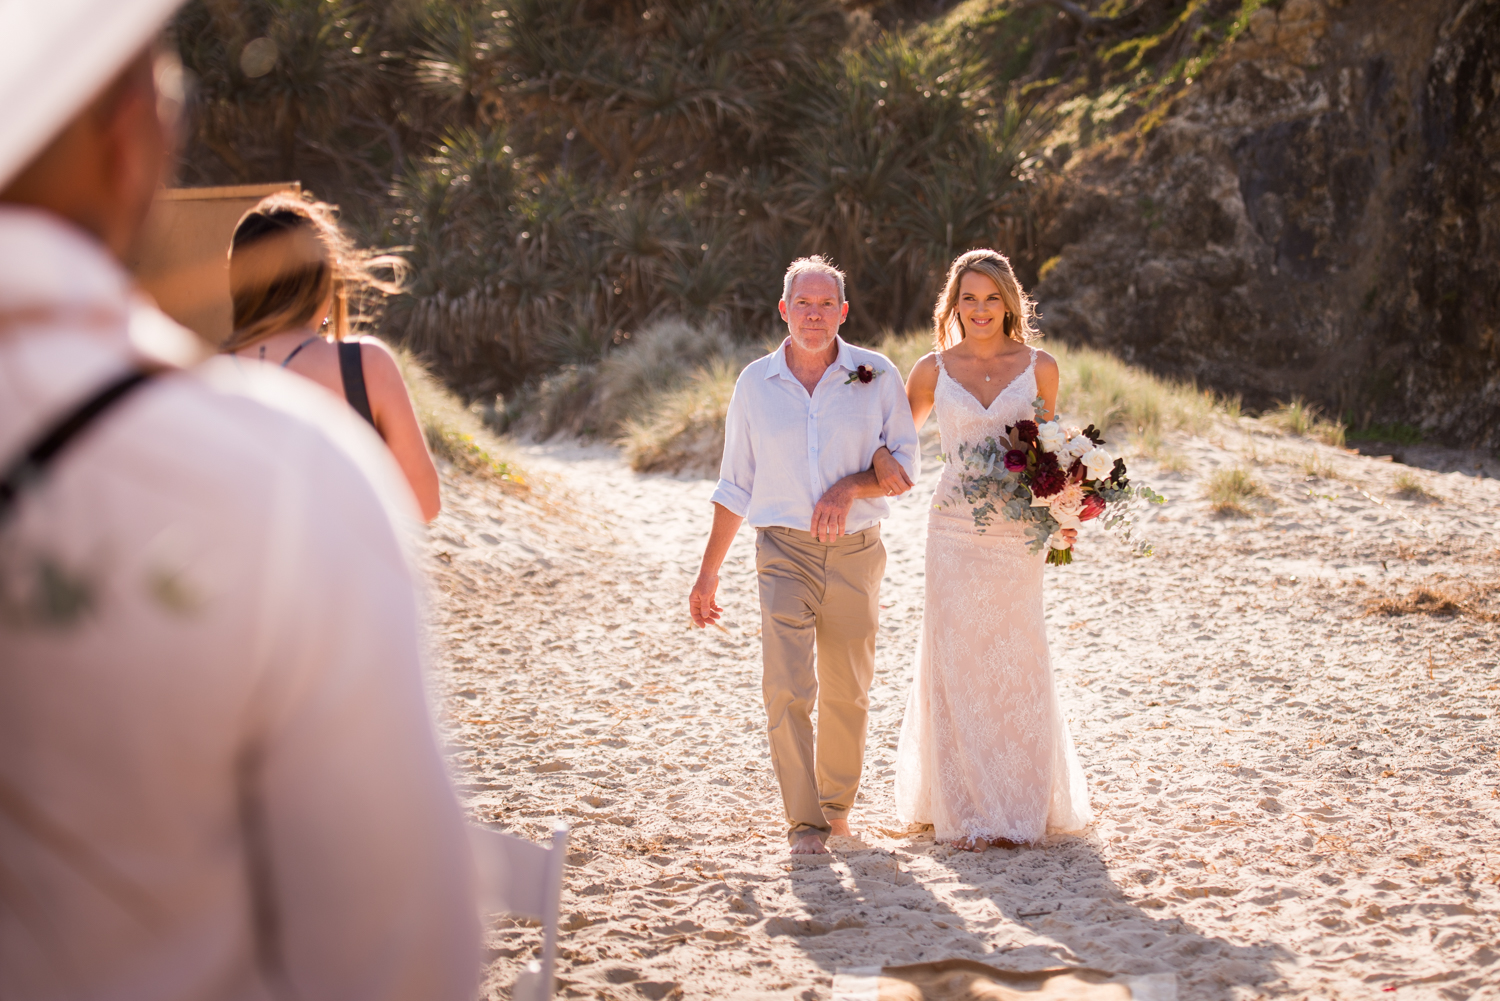 Straddie Hotel | North Stradbroke Island wedding | Steph and SolStraddie Hotel | North Stradbroke Island wedding | Steph and Sol